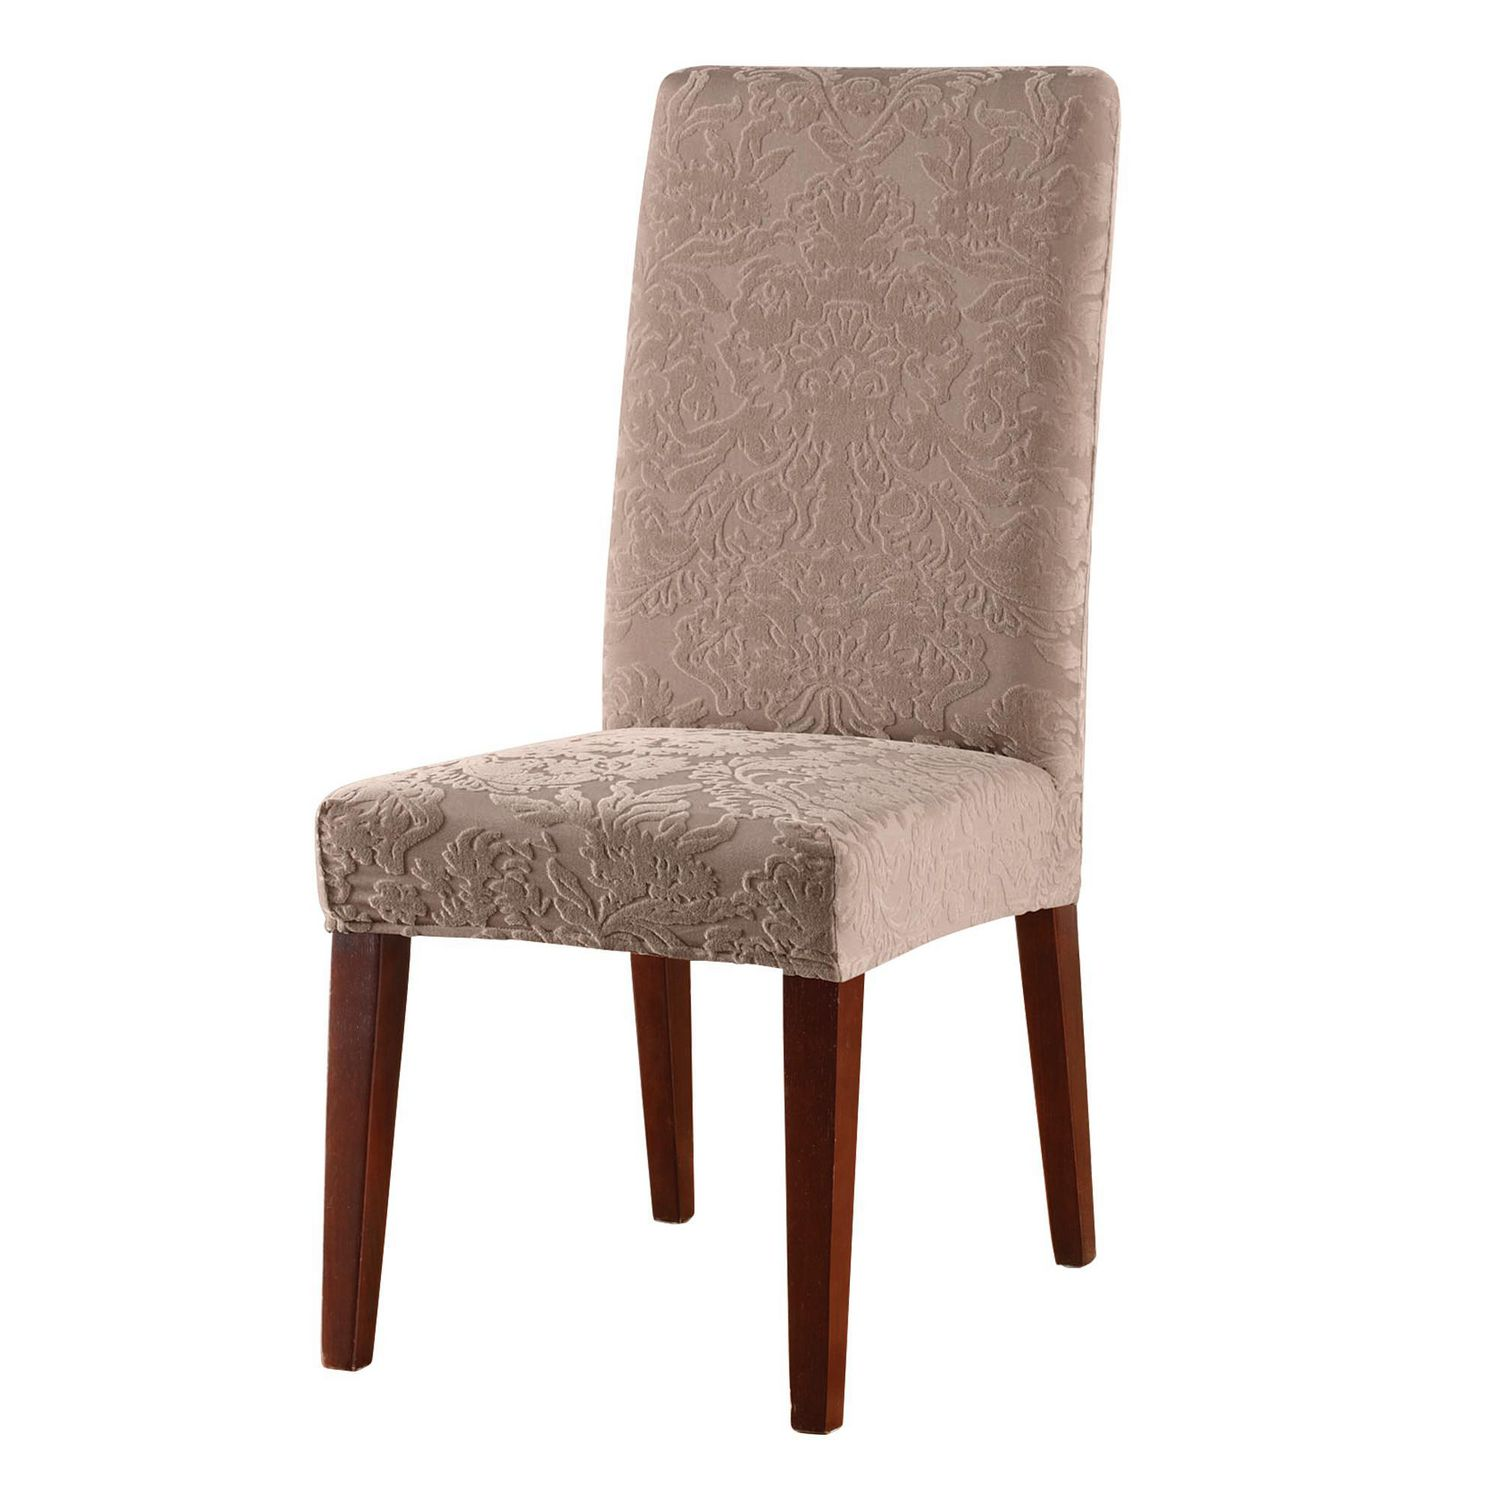 Dining Chair Slipcover Sure Fit Jacquard Damask Stretch Dining Chair Slipcover